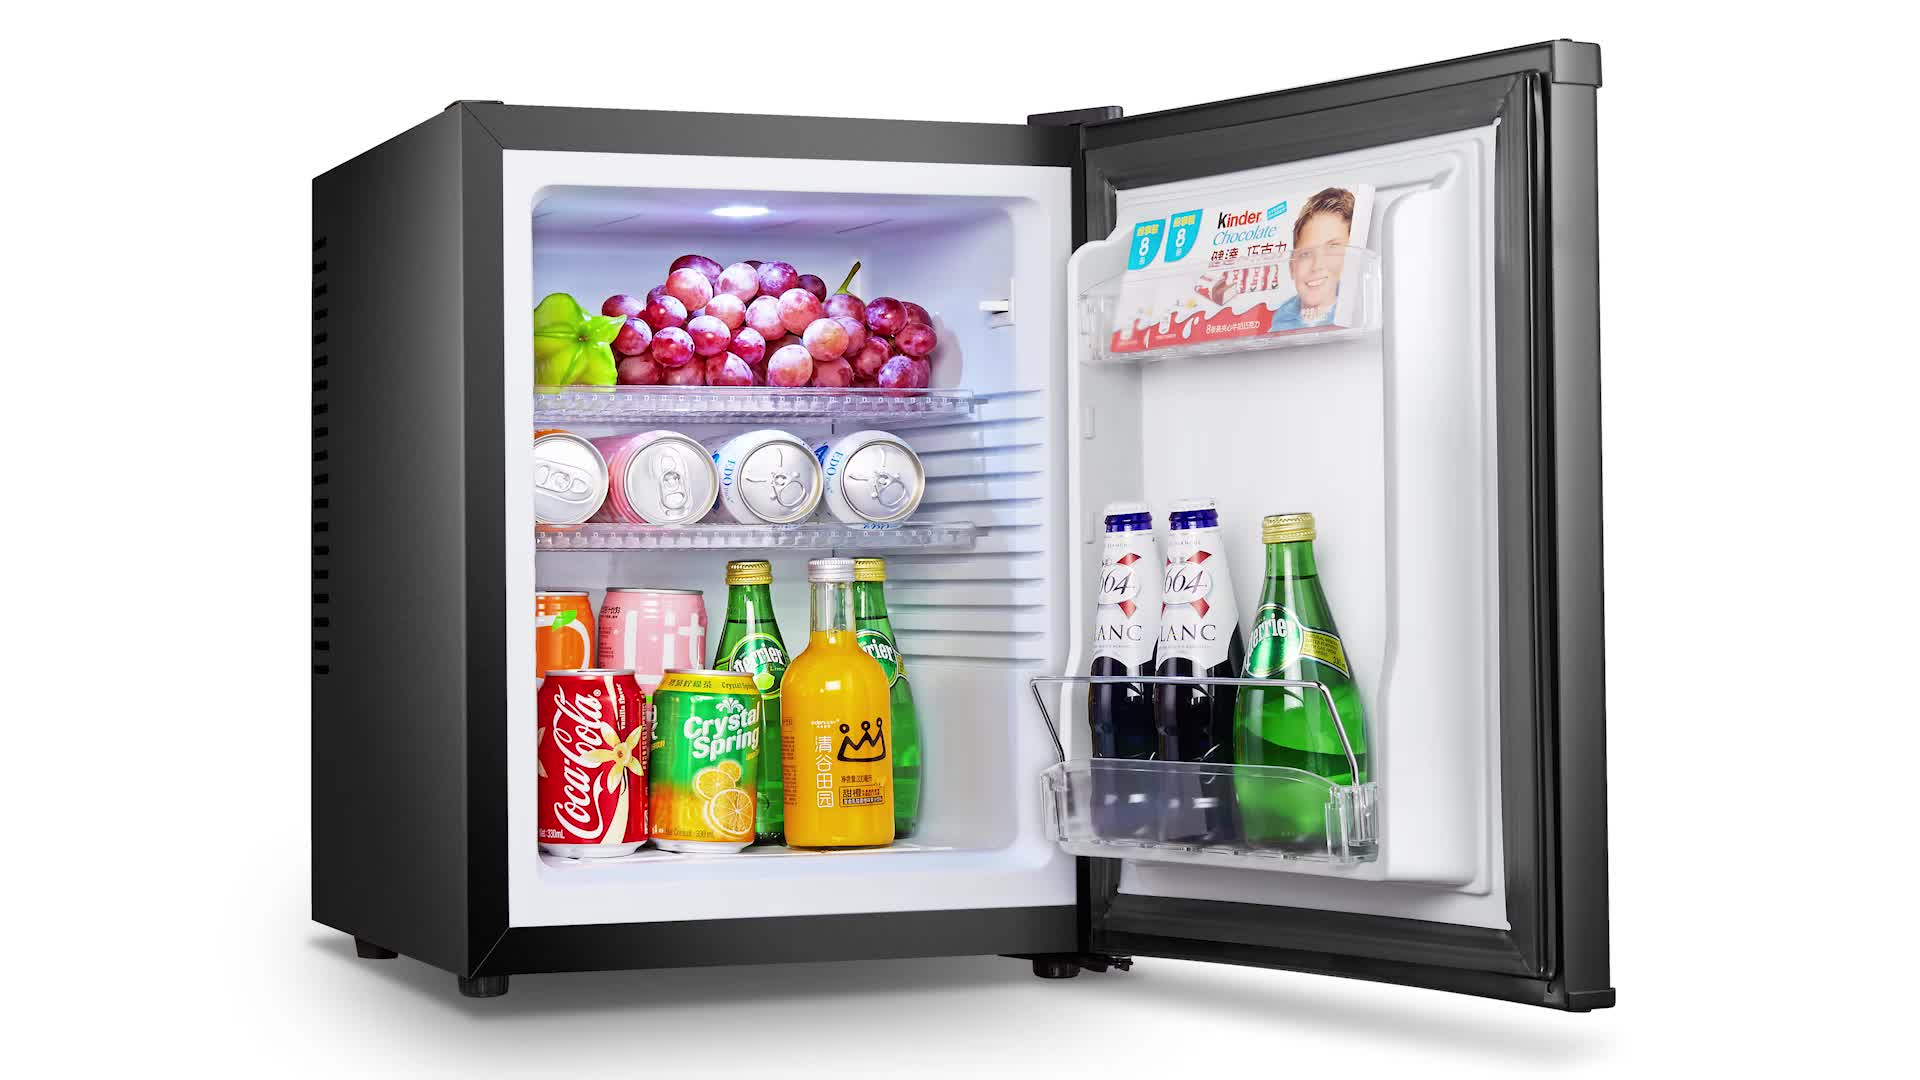 BCH-40A super cooling thermoelectric glass door compact refrigerator